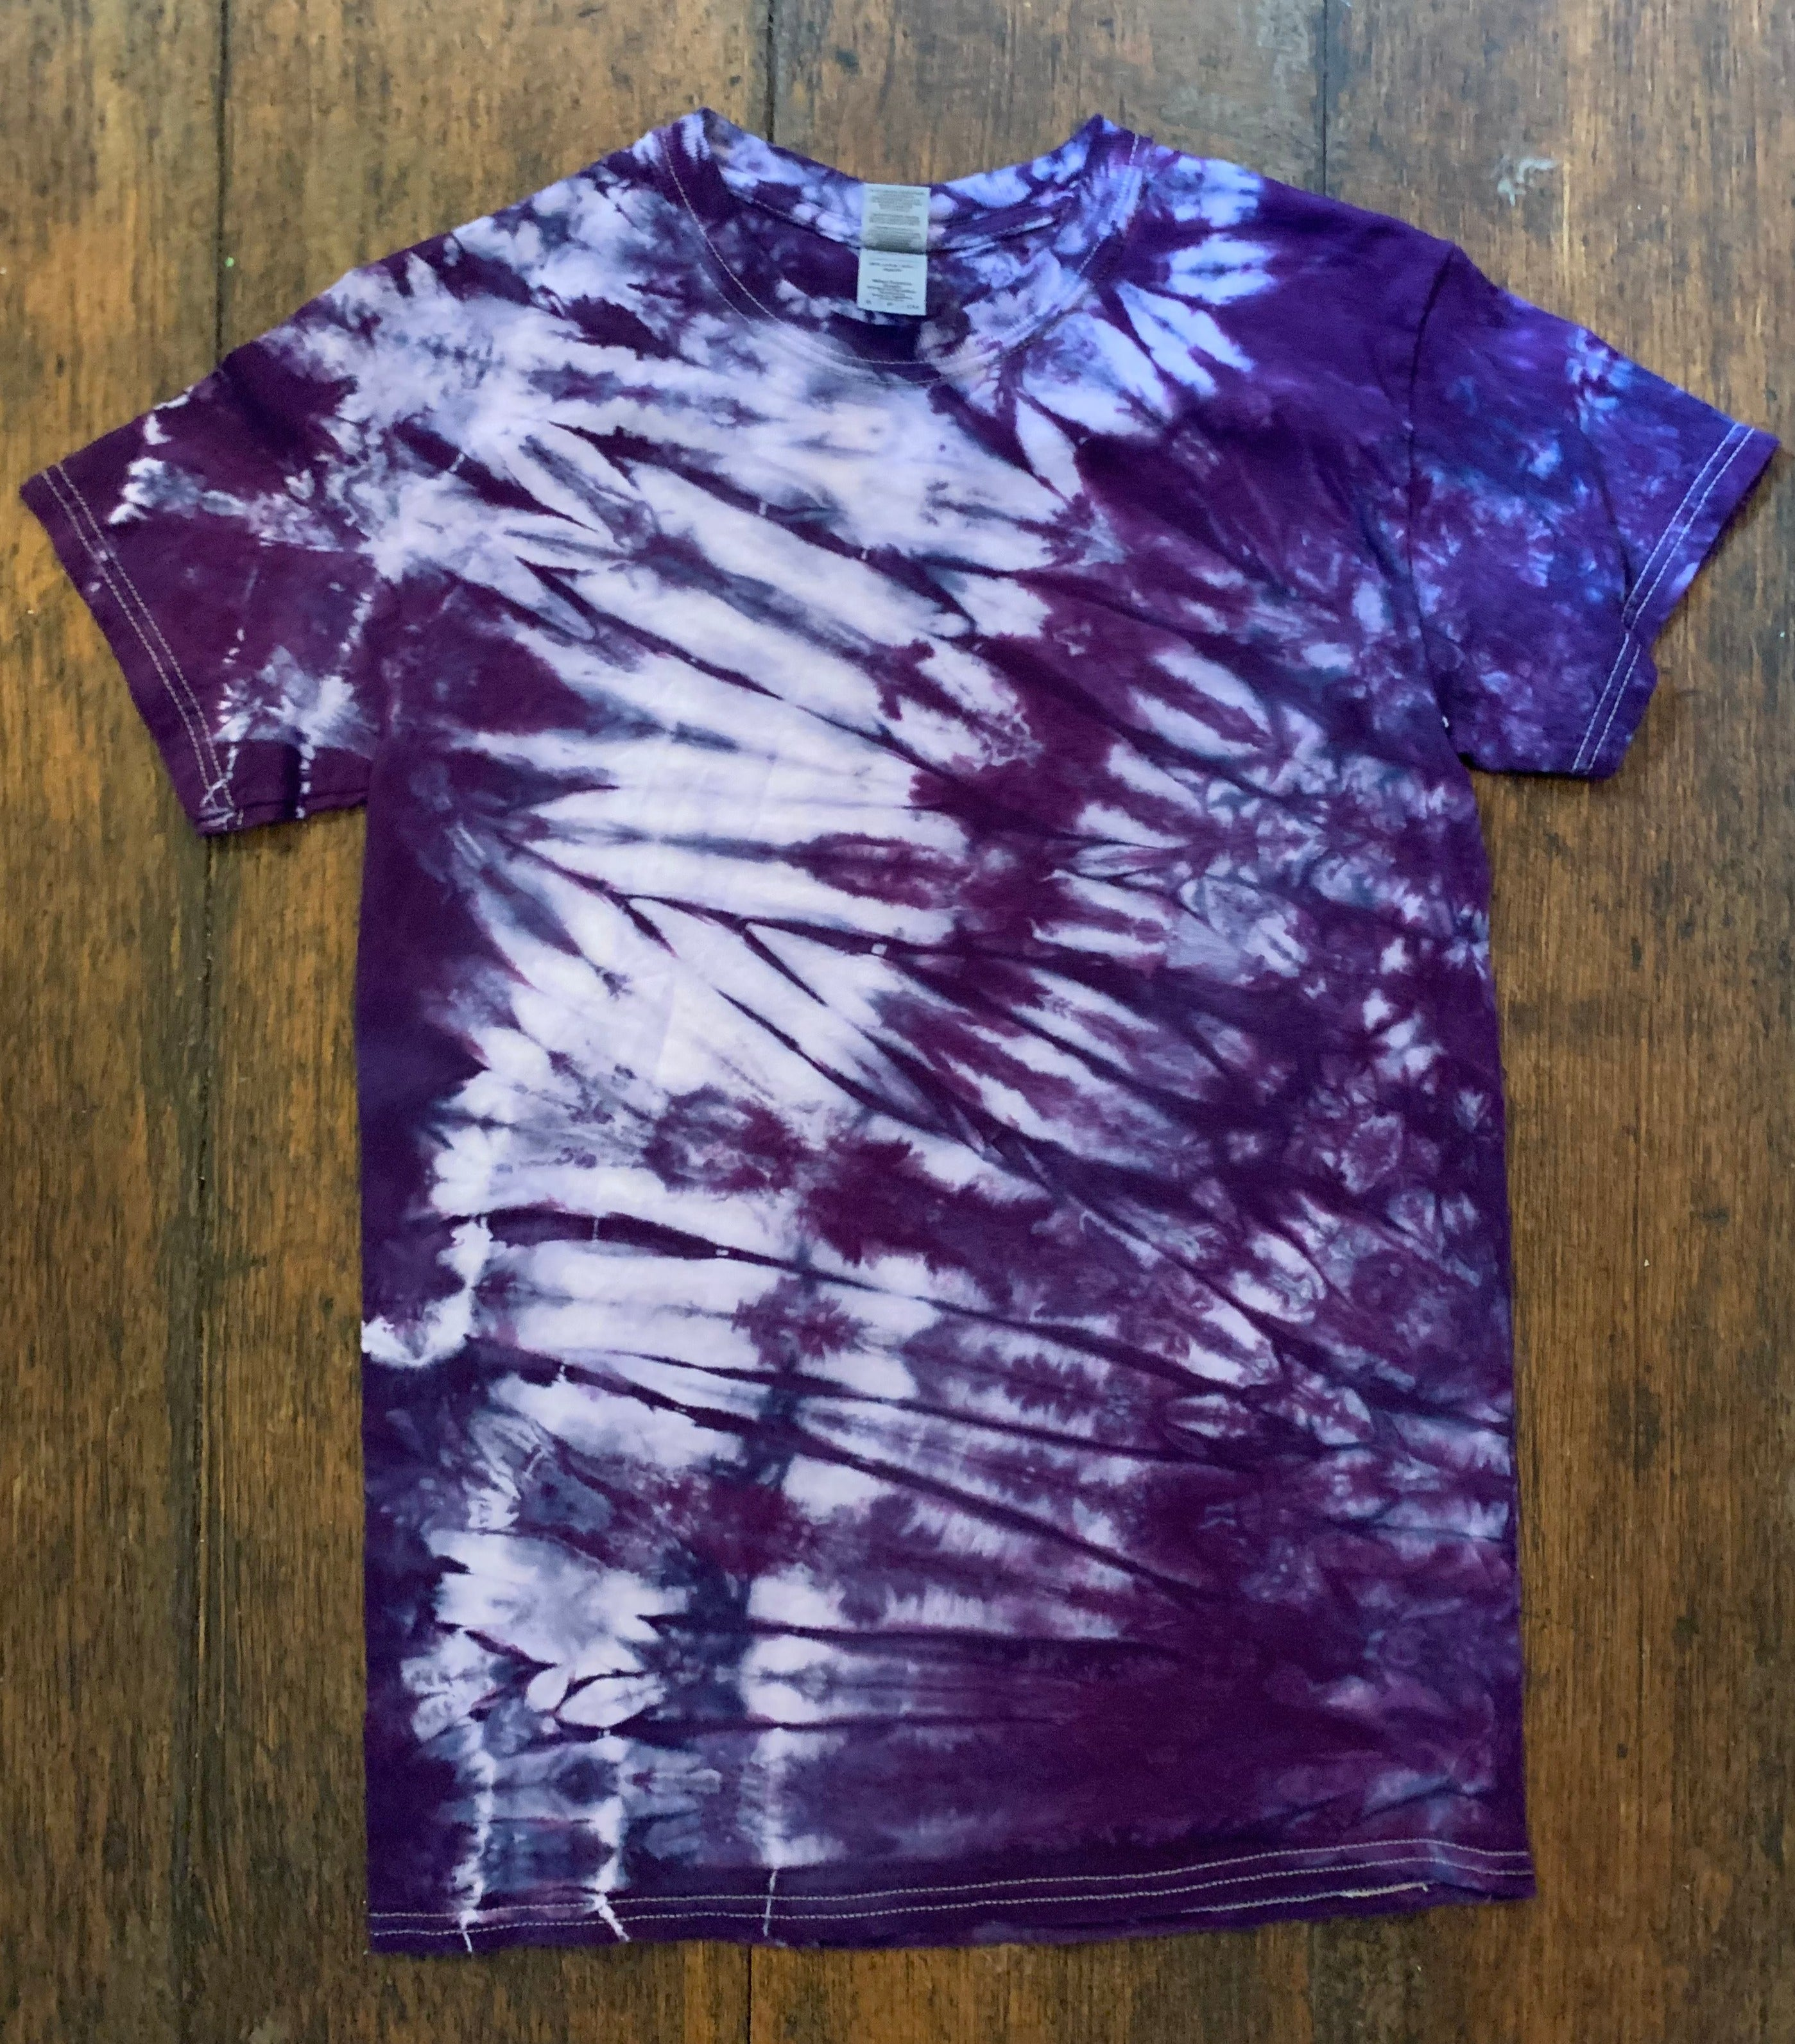 Tie-Dye Short Sleeve T-Shirt, Size Small